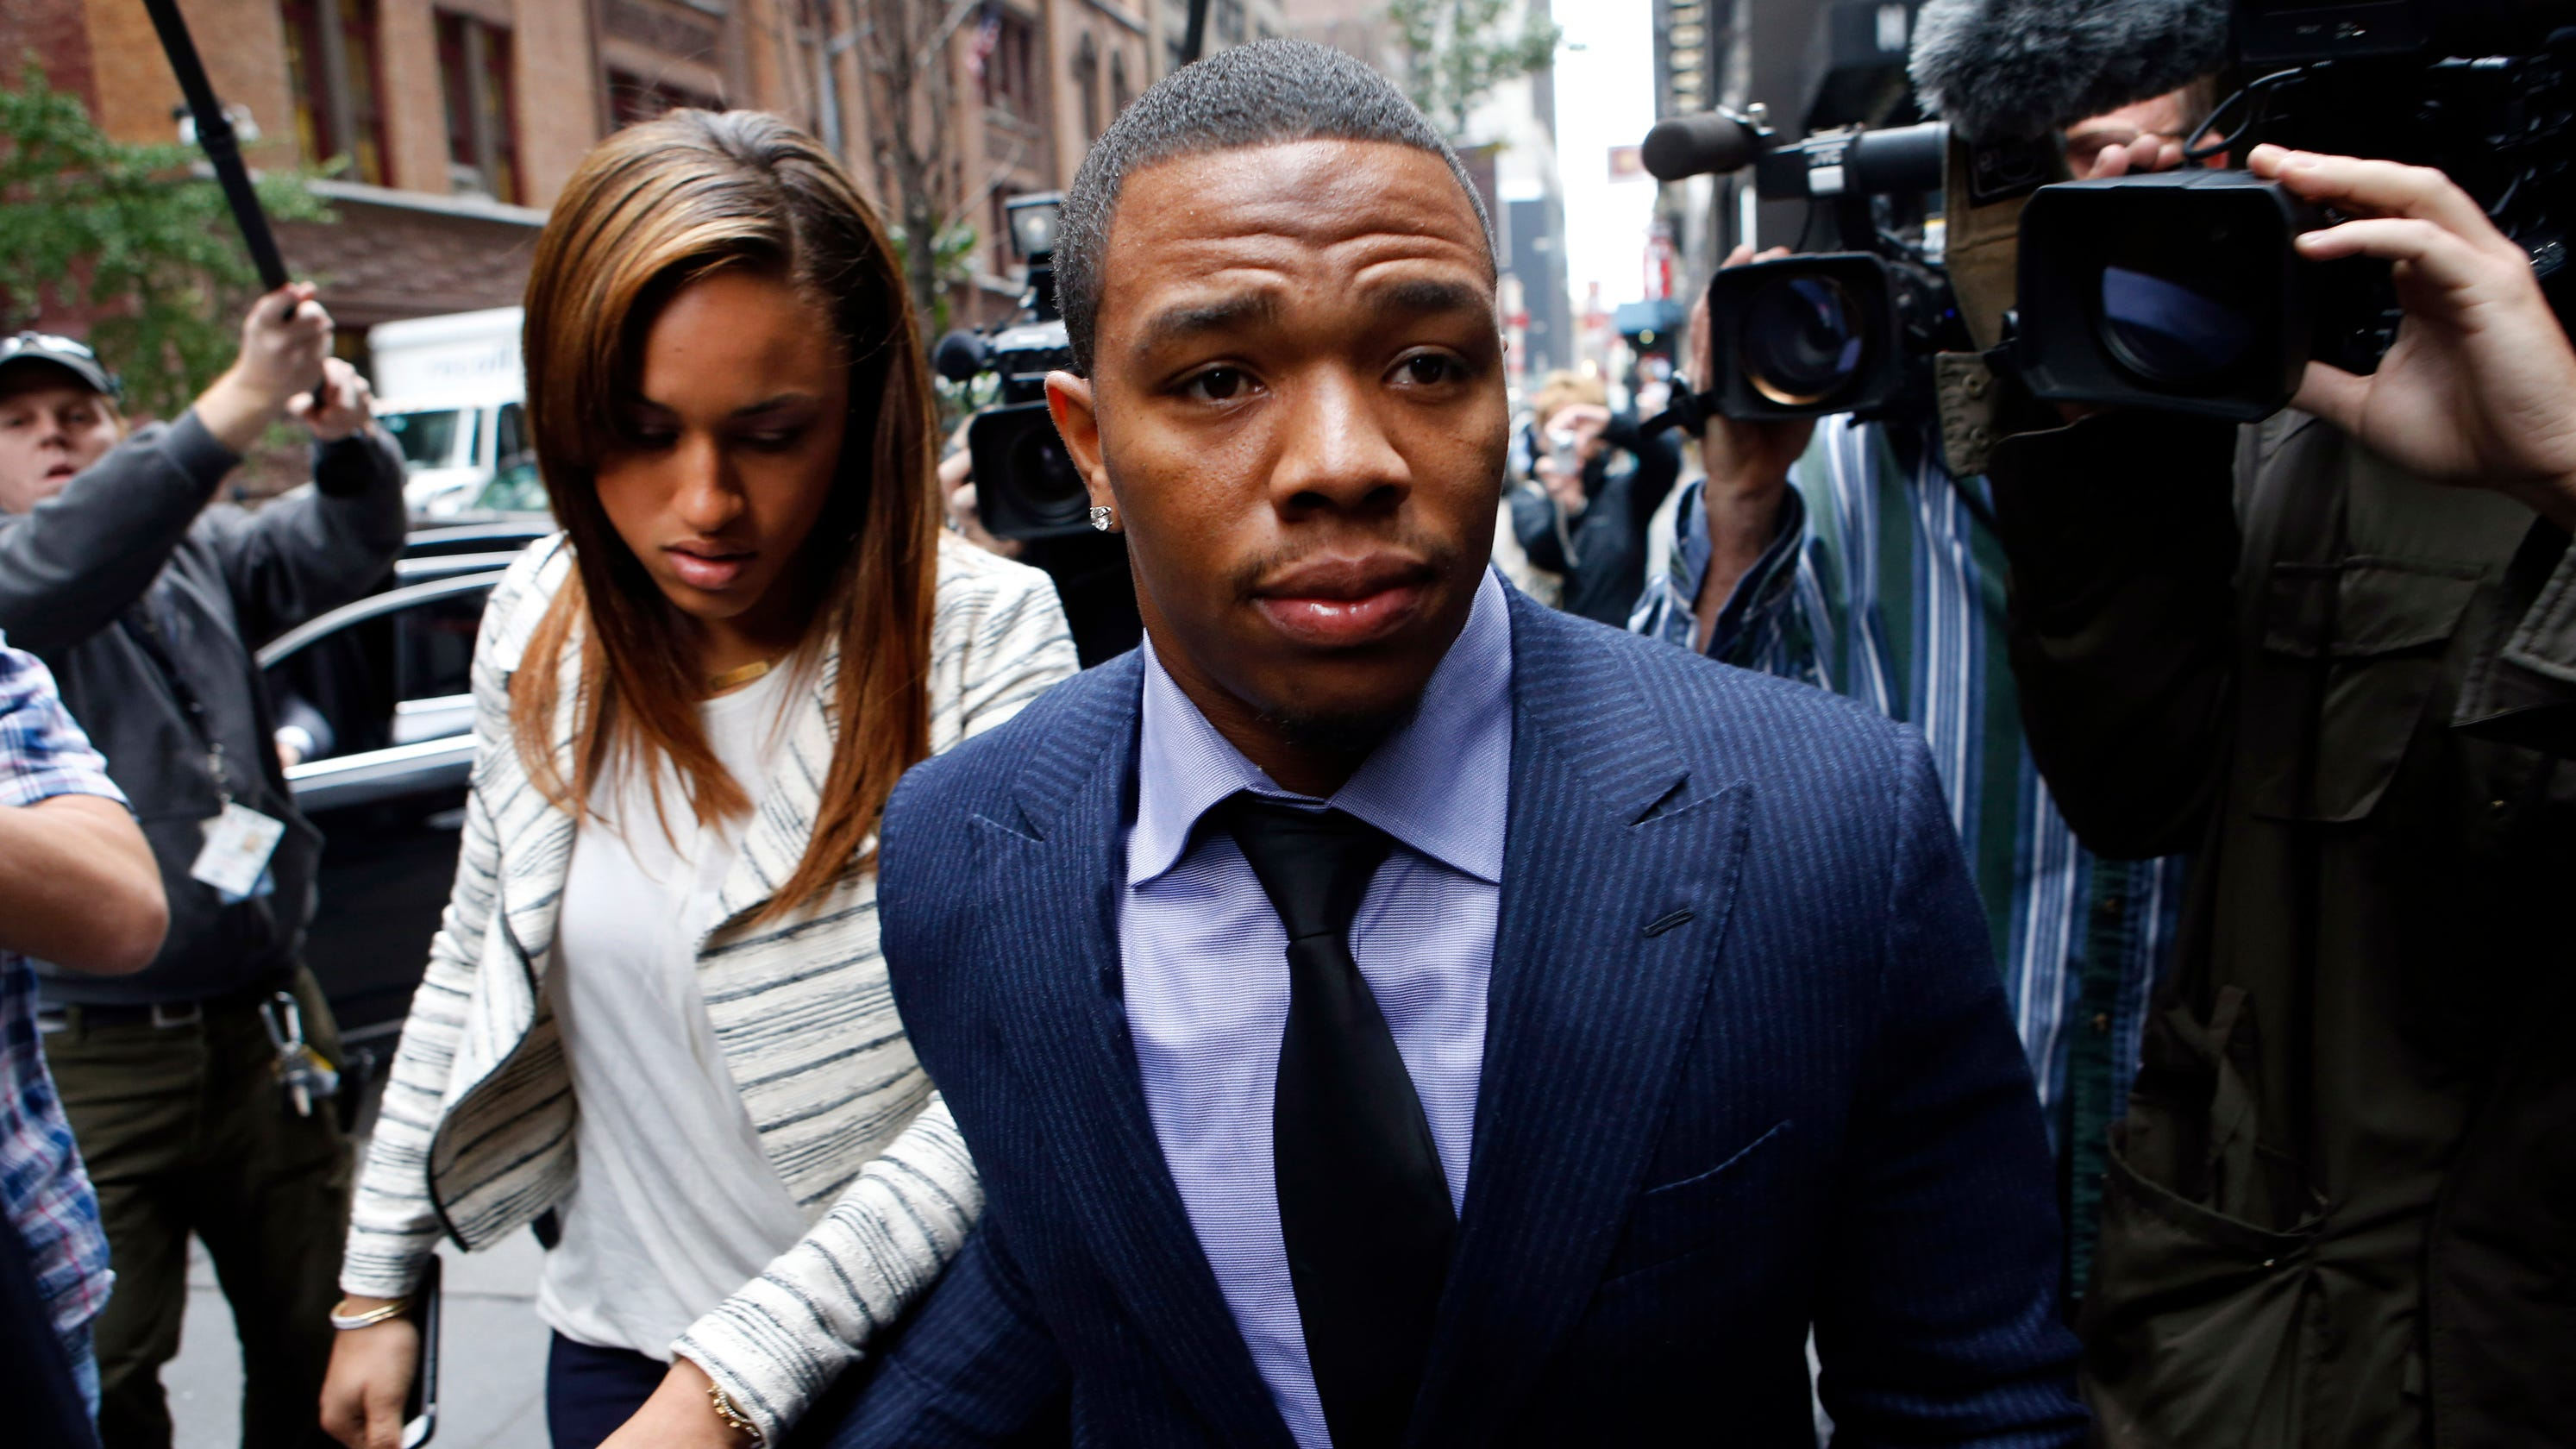 Five years later, setting the record straight on the Ray Rice video